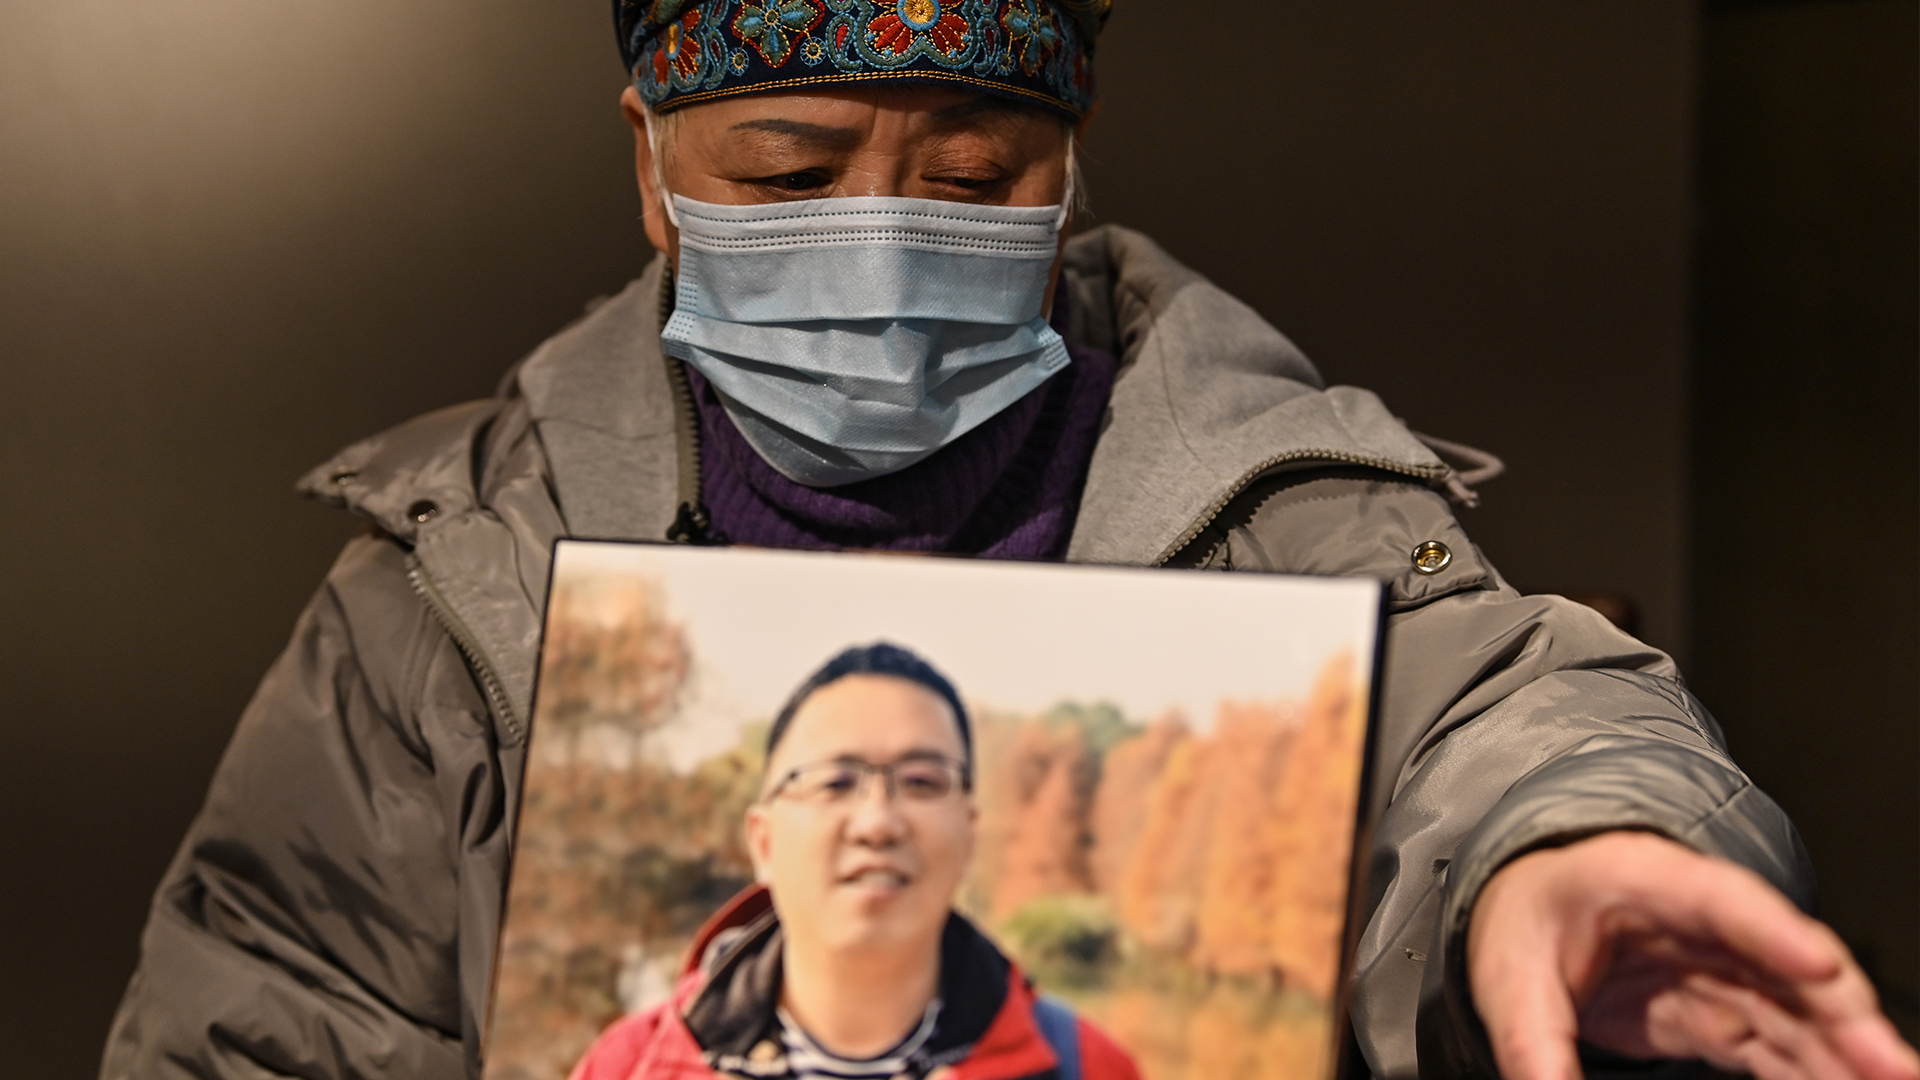 Coronavirus pandemic: Wuhan residents bear 'permanent scars' one year after start of outbreak